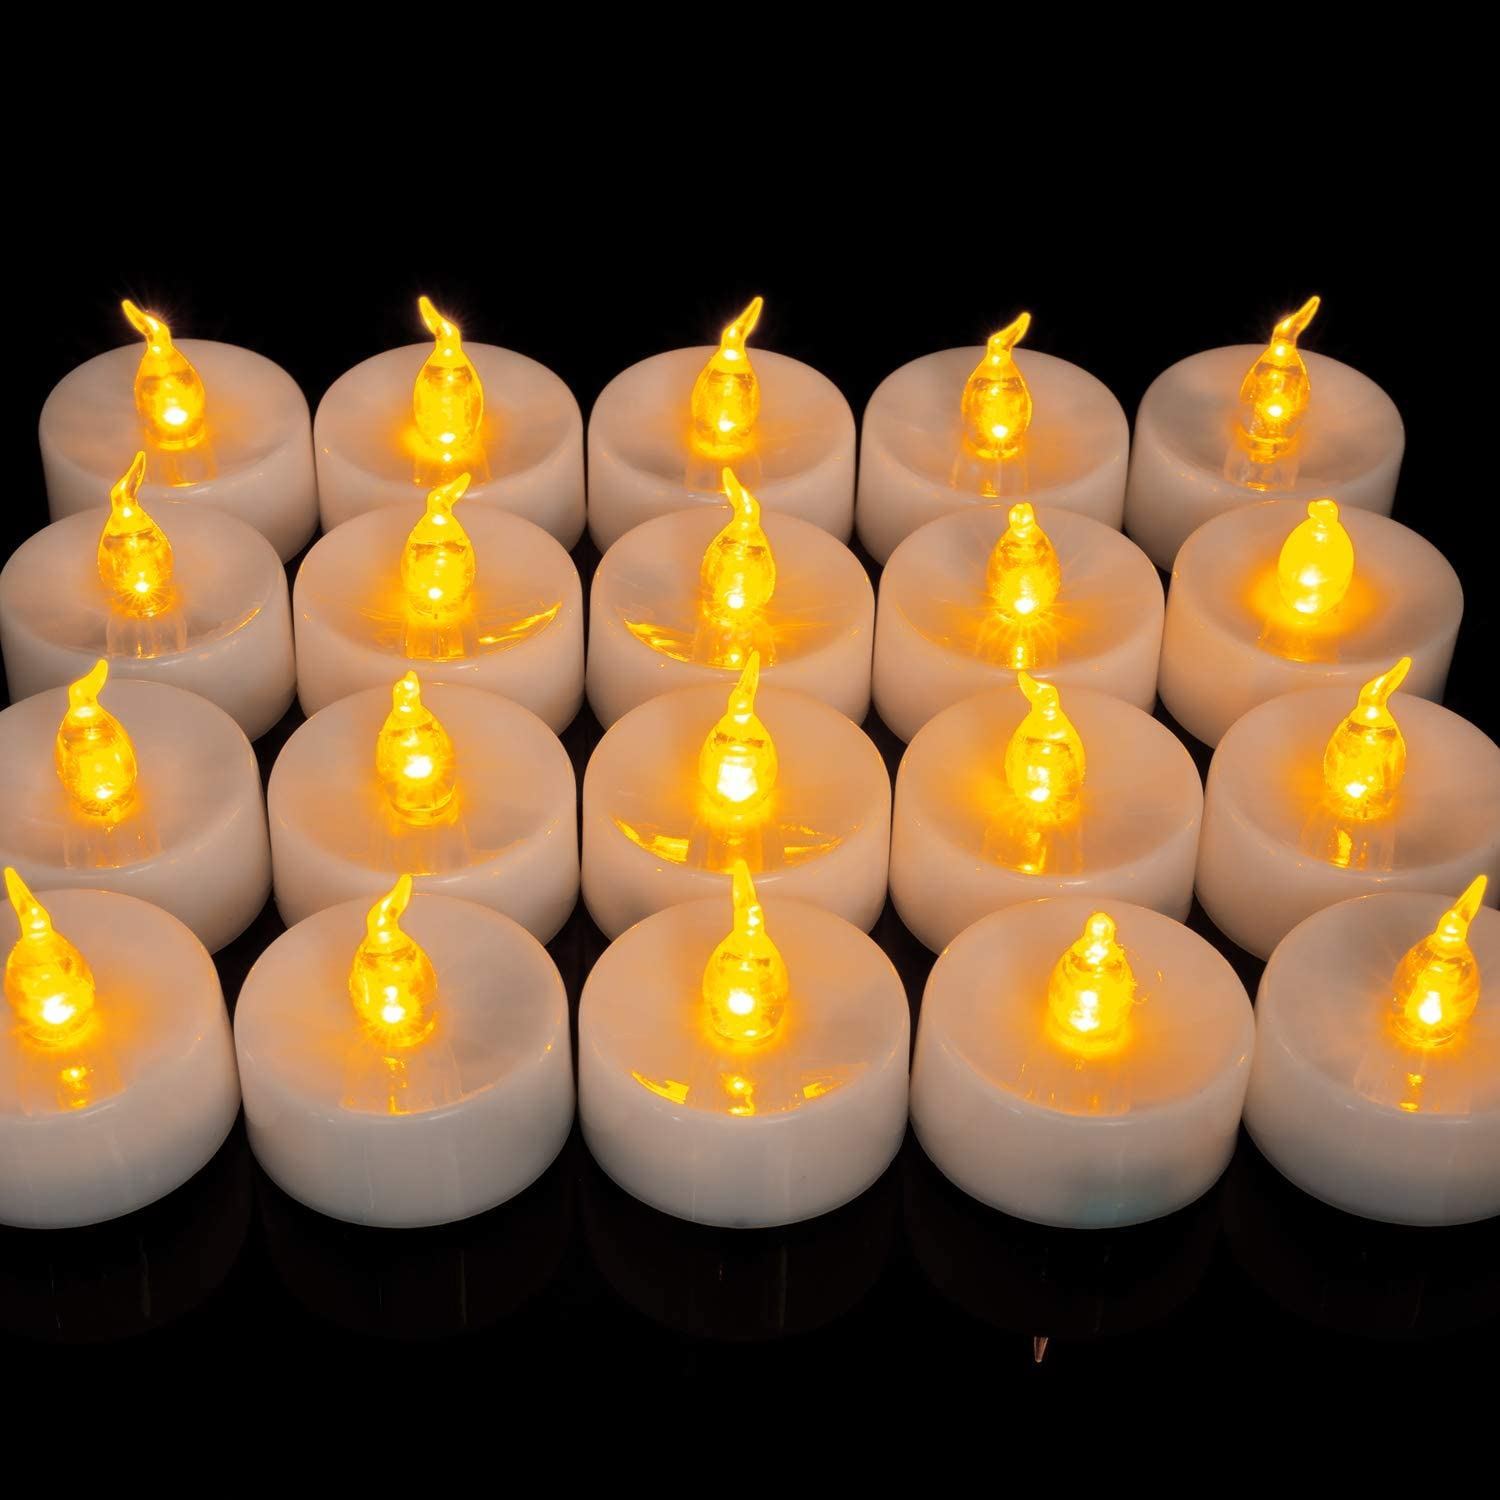 Amazon.com: Homemory LED Tea Lights, Set of 24 Flameless Flickering Tealight  Candle, Electric Fake Candle for Votive, Wedding, Party, Table, Dining  Room, Gift : Tools & Home Improvement